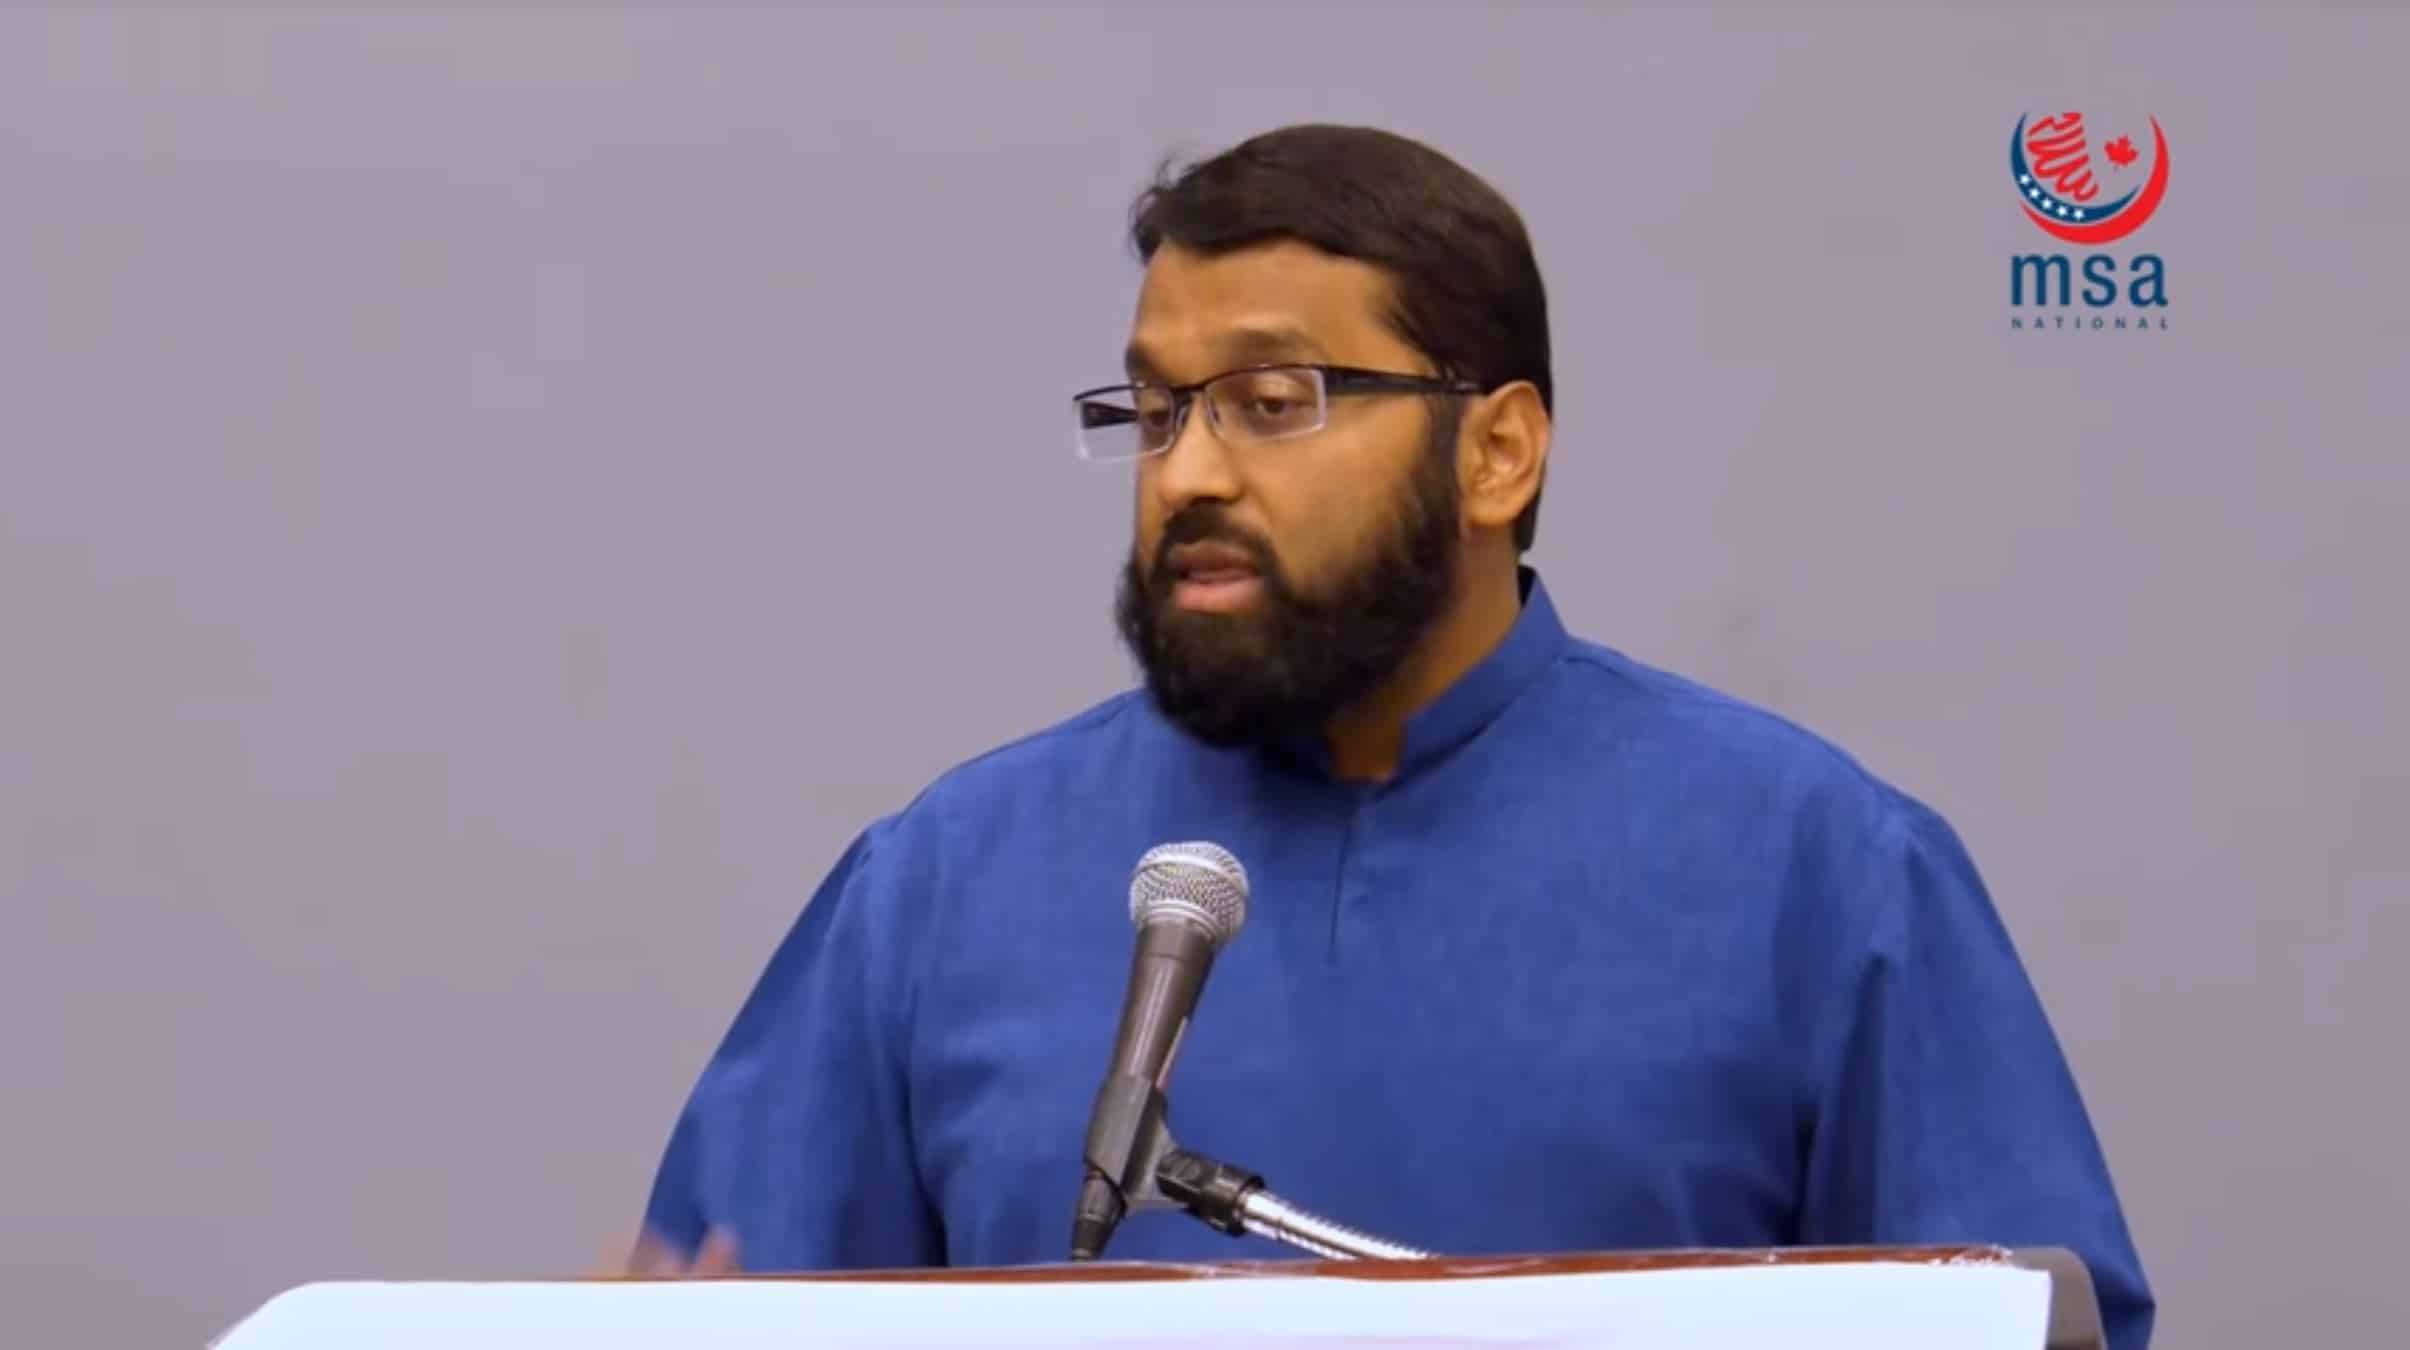 Yasir Qadhi – Why Are Muslims Leaving Islam?